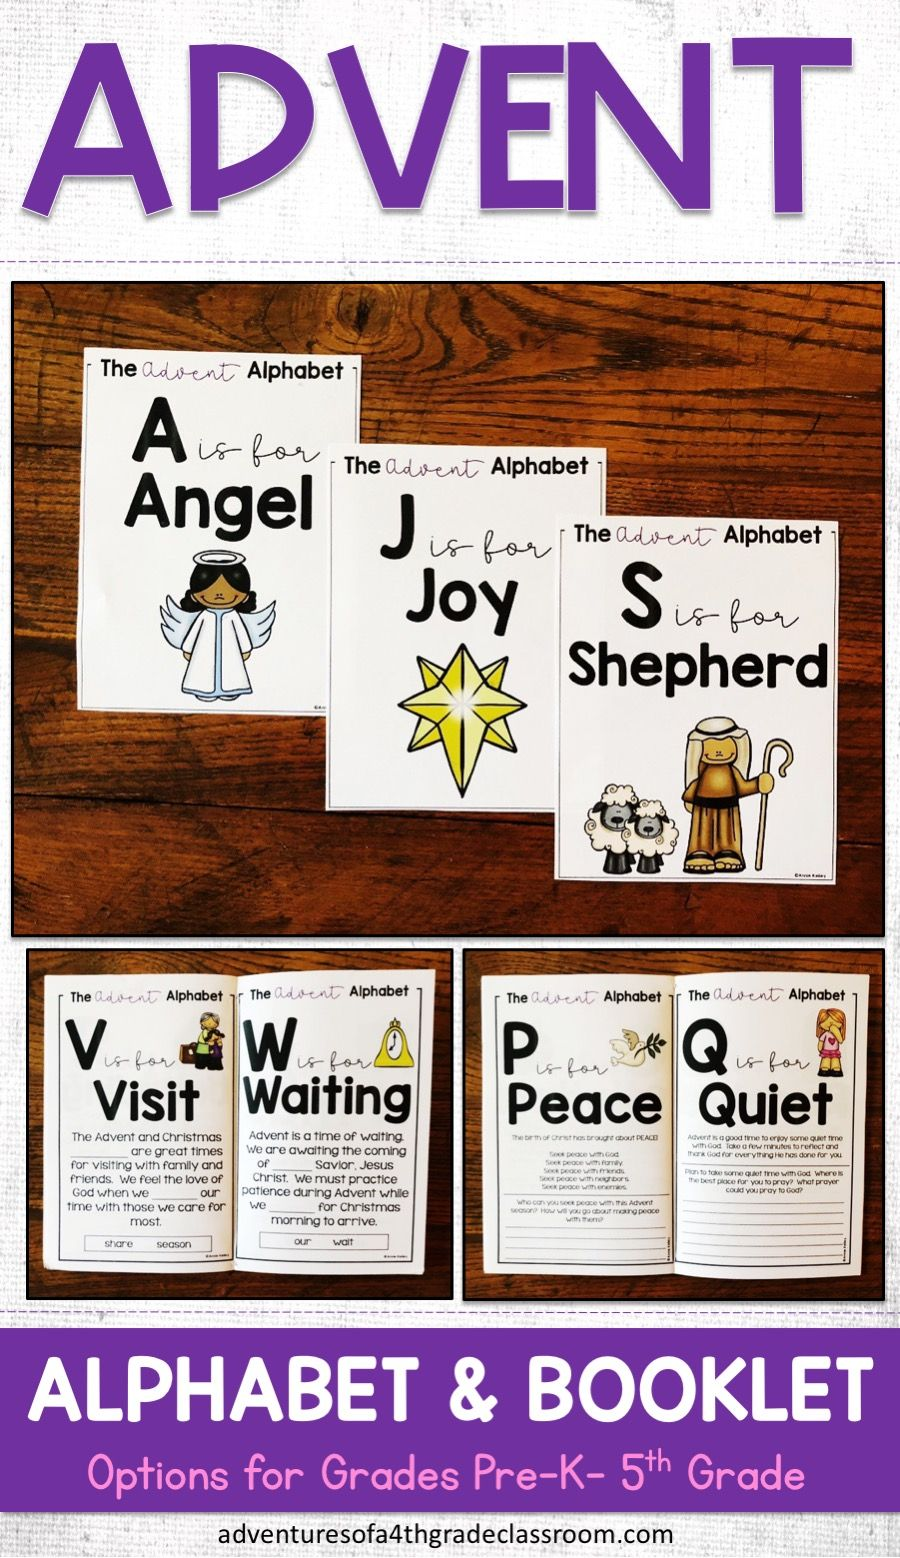 small resolution of Advent Alphabet \u0026 Booklet   Elementary social studies lessons